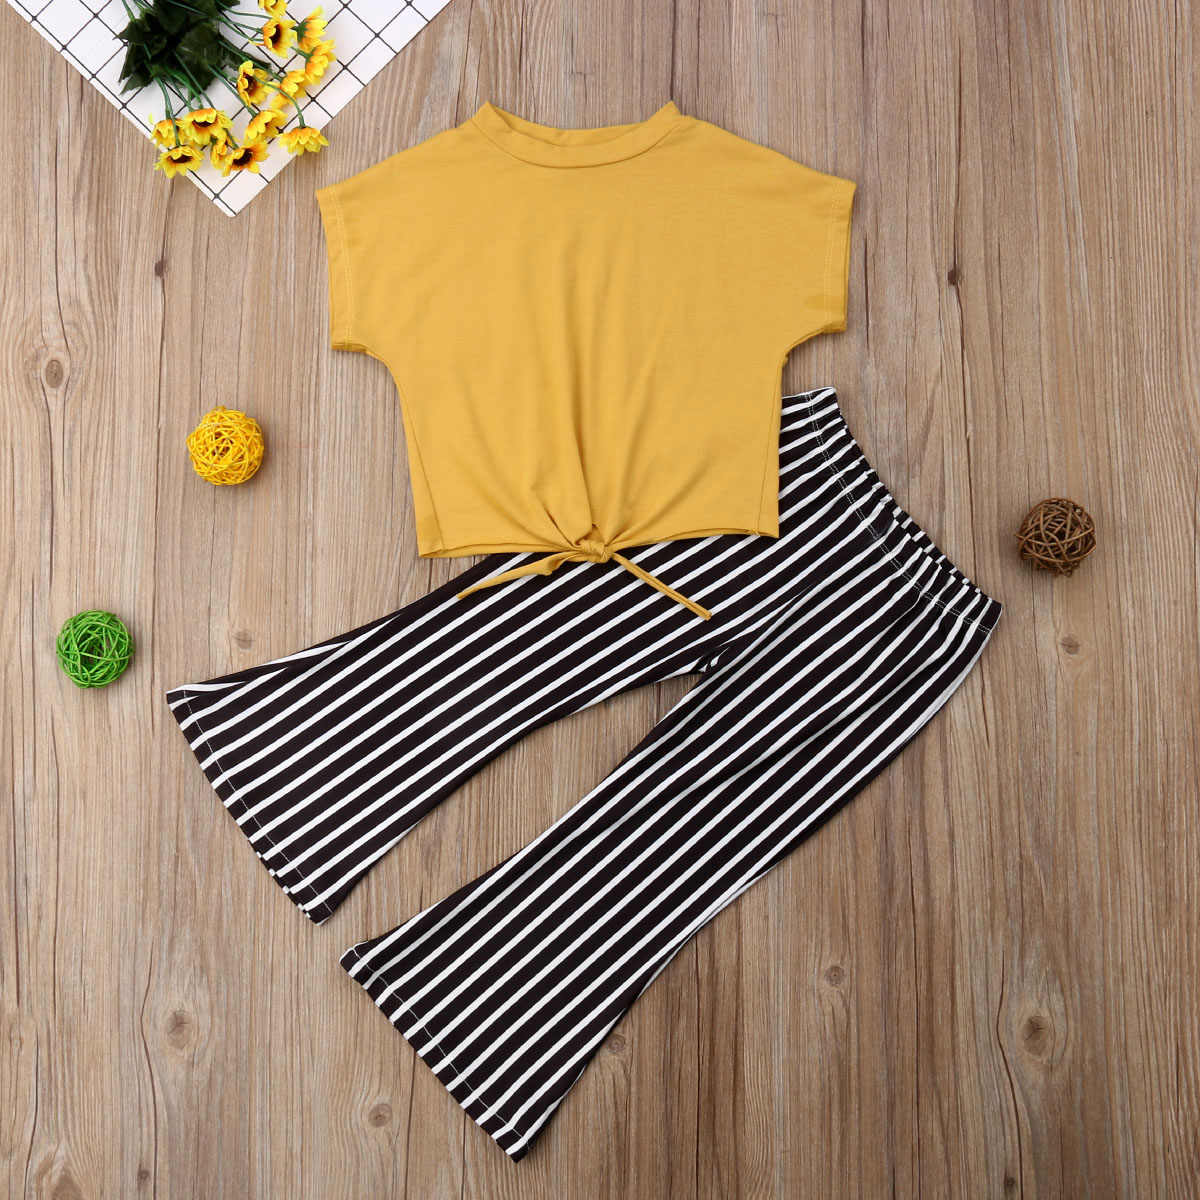 6e11422a25eecb ... 2-7Y Fashion Toddler Kids Baby Girl Short Sleeve Yellow T-shirt Tops  Striped ...